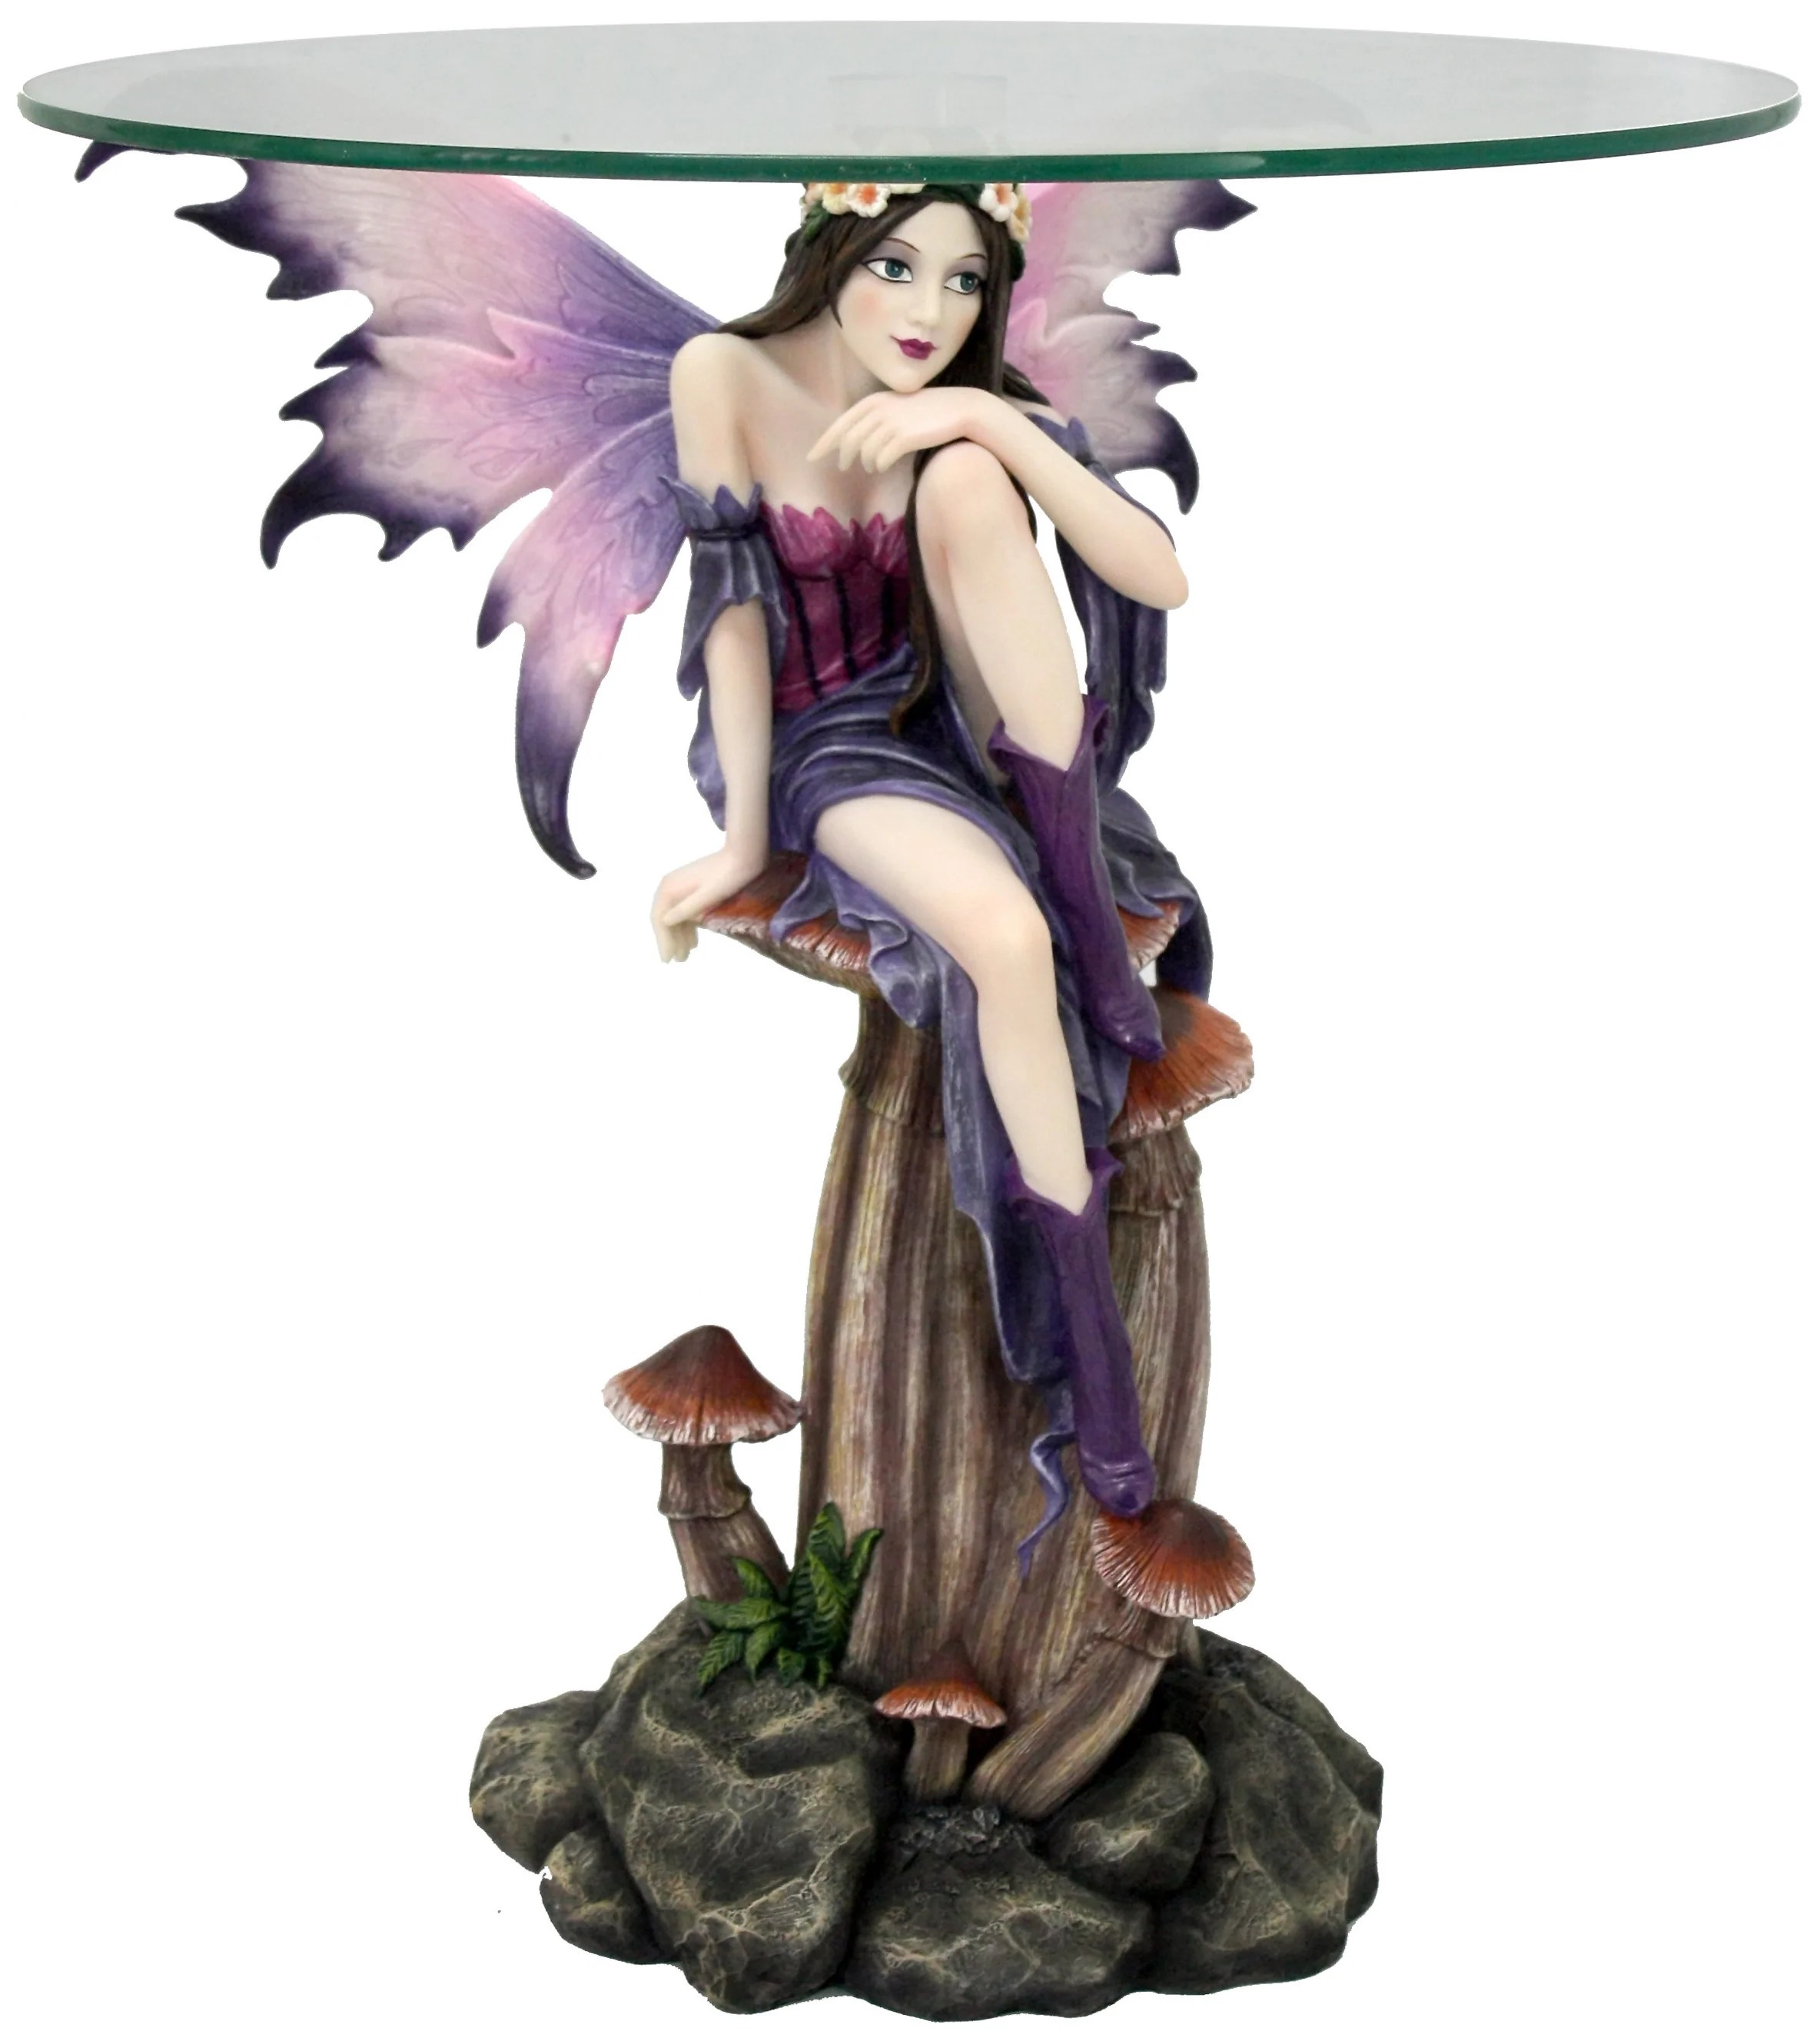 Faerie Statues Fairy Figurines Dragonspace Gift Shop